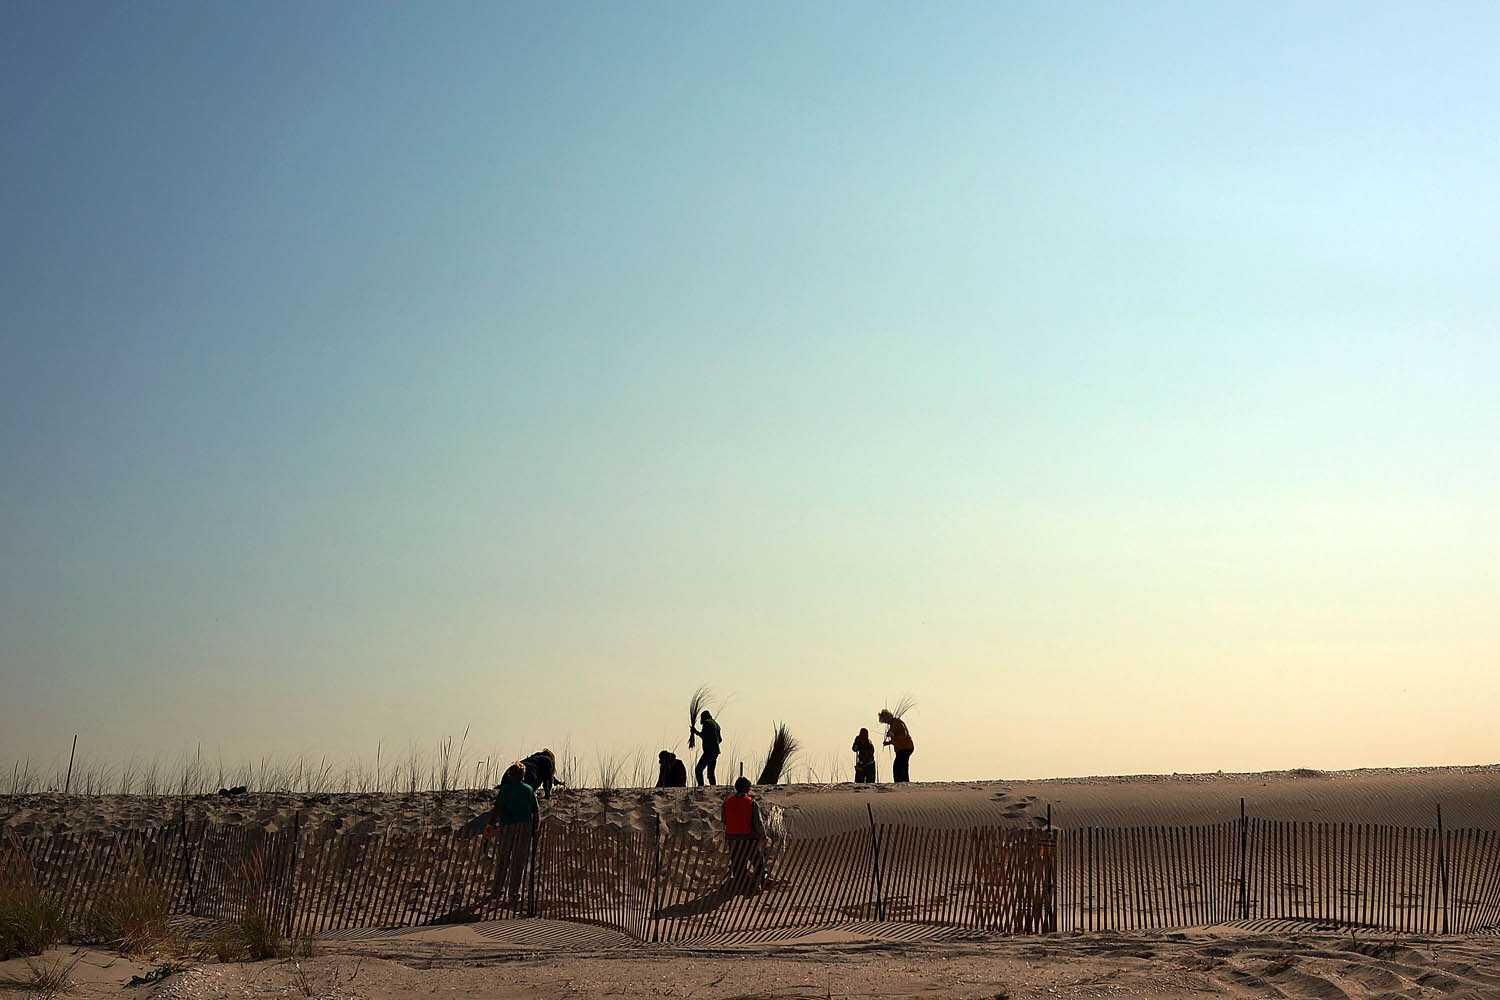 Oct. 29, 2013. Residents plant beach grass on protective sand dunes in the Breezy Point neighborhood on the one-year anniversary of Hurricane Sandy in the Queens borough of New York City.